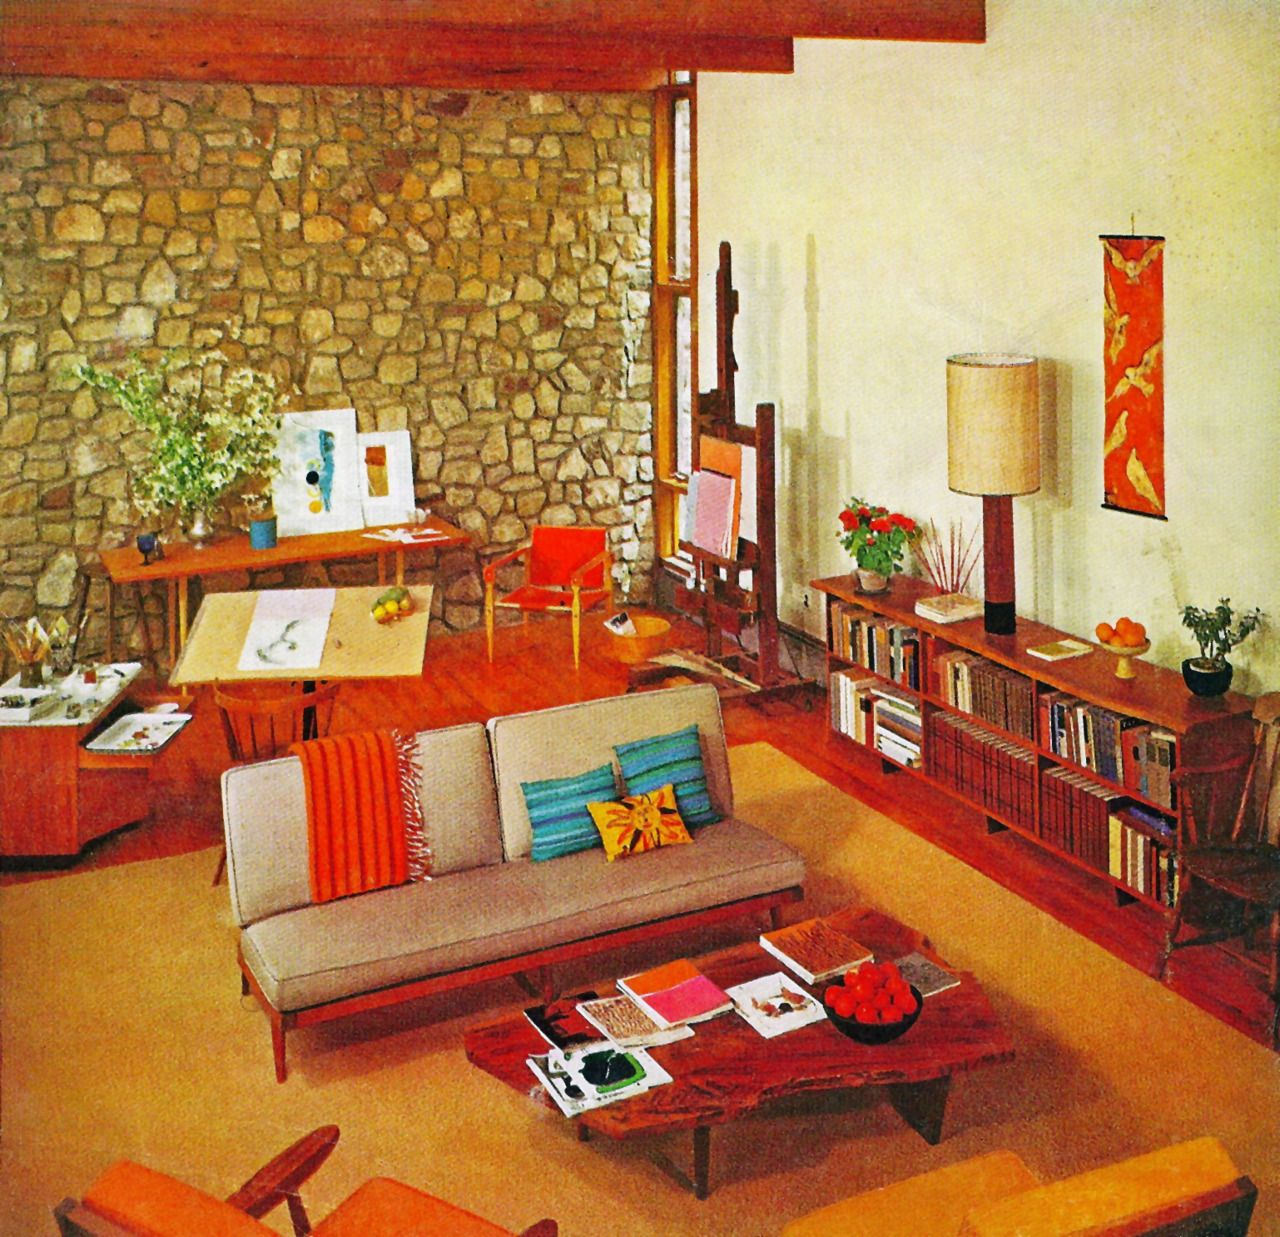 image of: 70s decorating ideas | wouldn't say no | pinterest